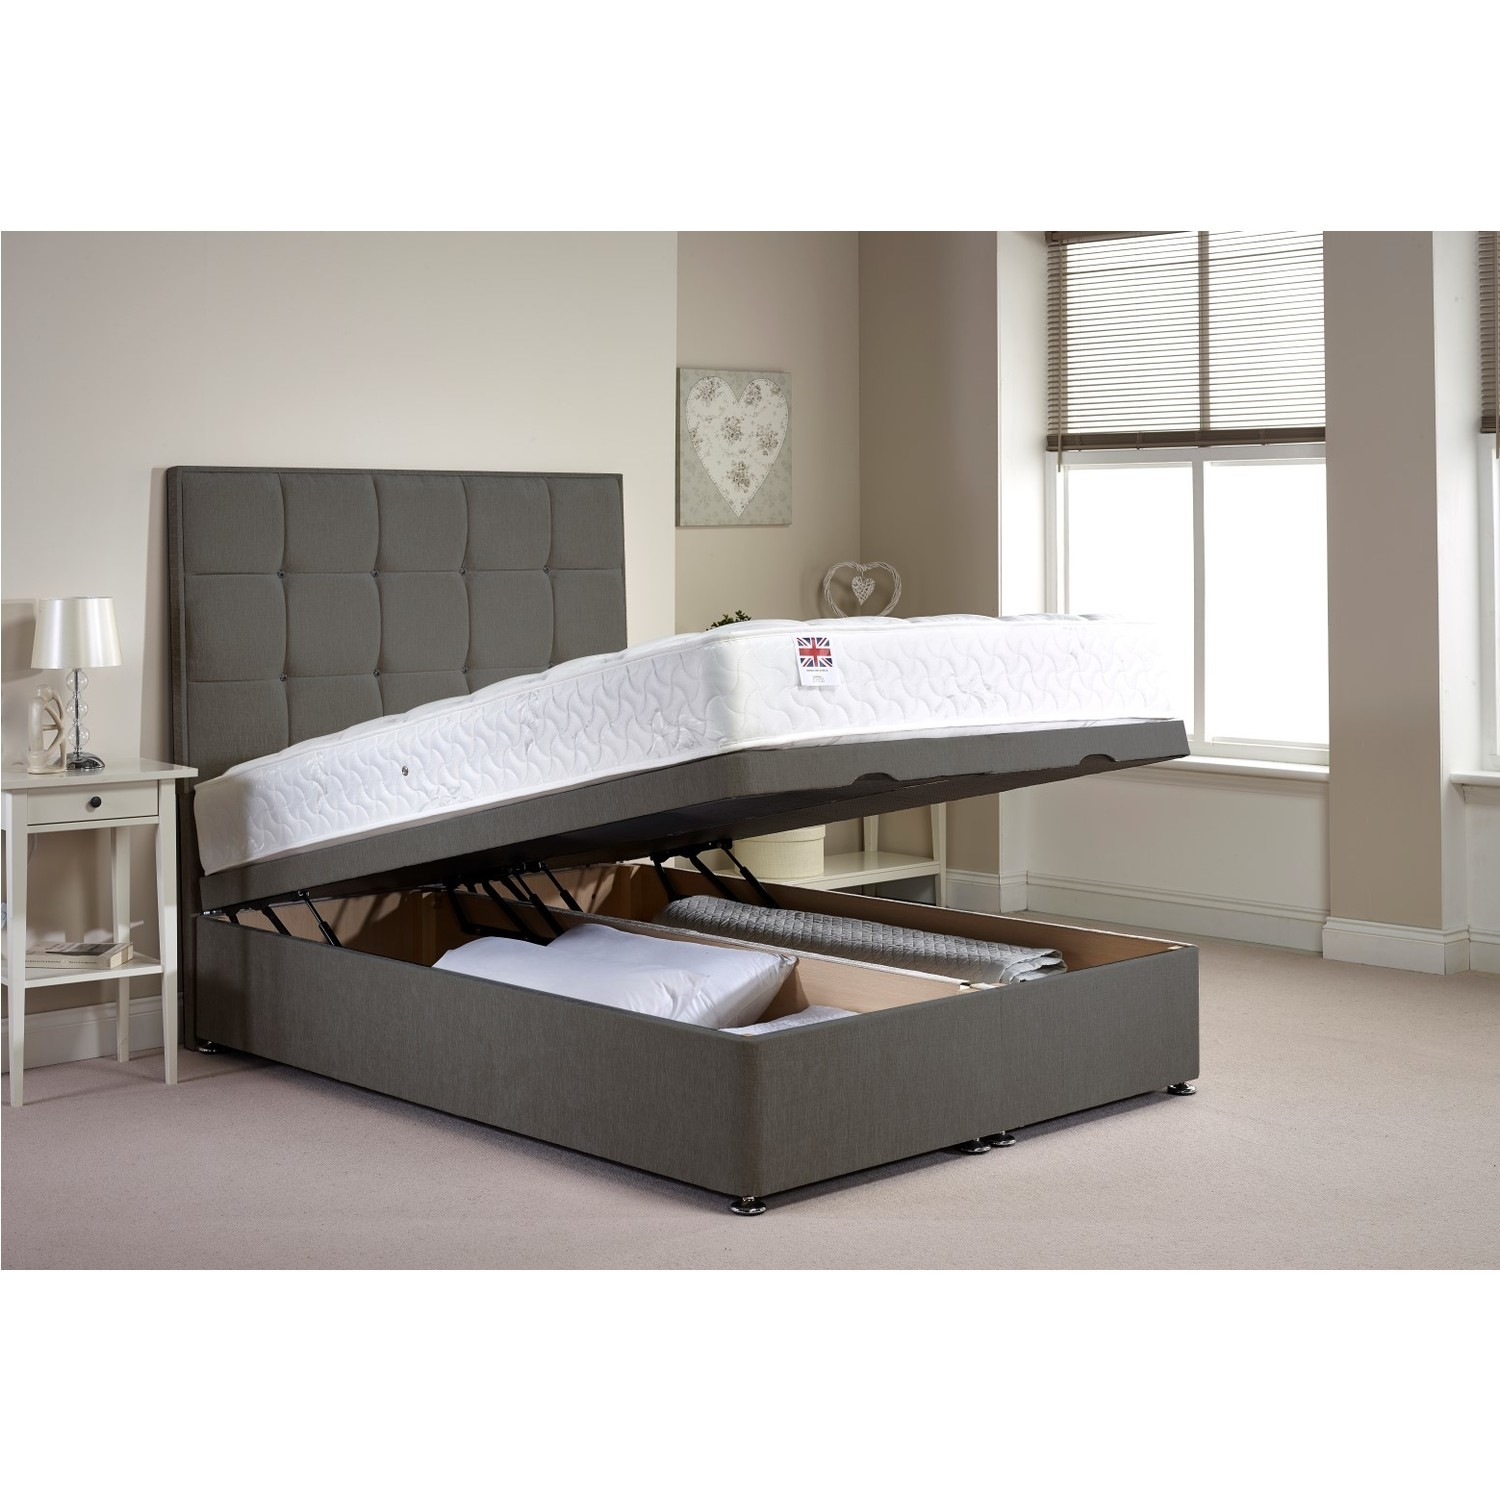 Appleton Ottoman King Size Bed Frame in Light Grey Chenille Fabric